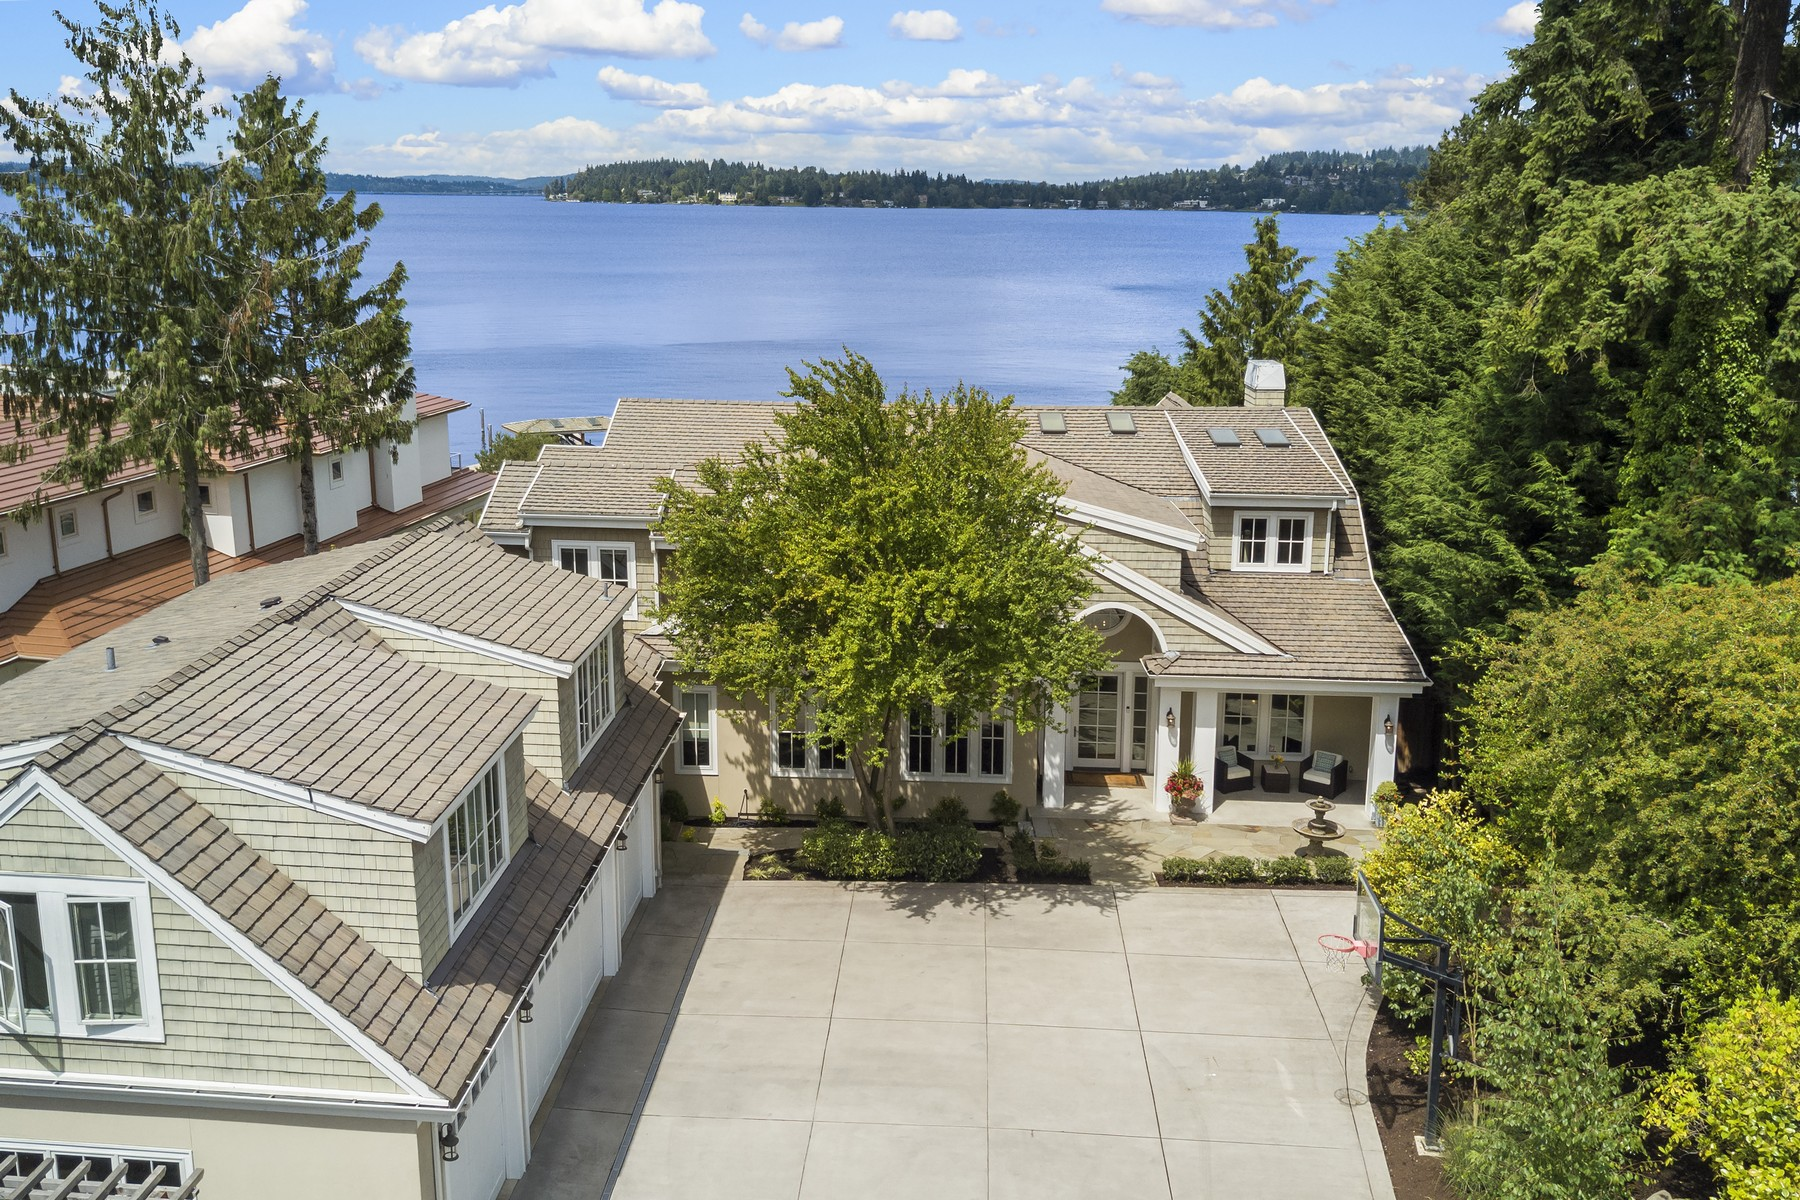 Single Family Home for Sale at Luxury on the Lake 7450 N Mercer Wy Mercer Island, Washington 98040 United States